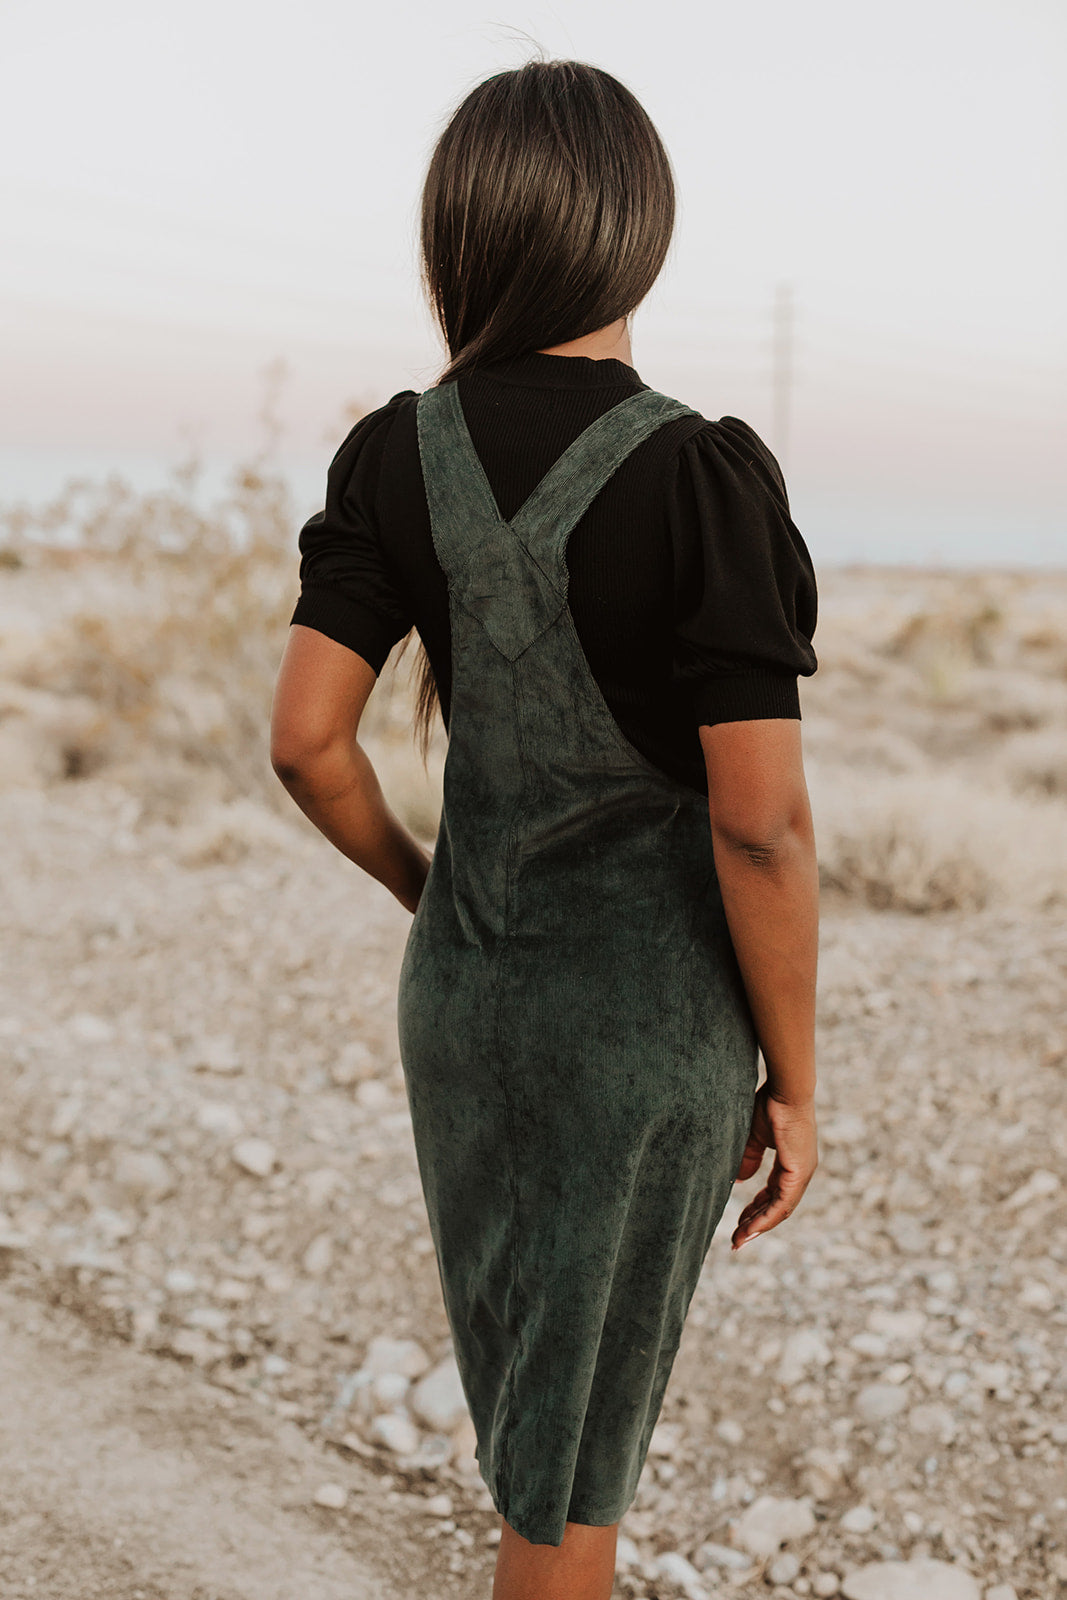 THE ODESSA OVERALL DRESS IN HUNTER GREEN